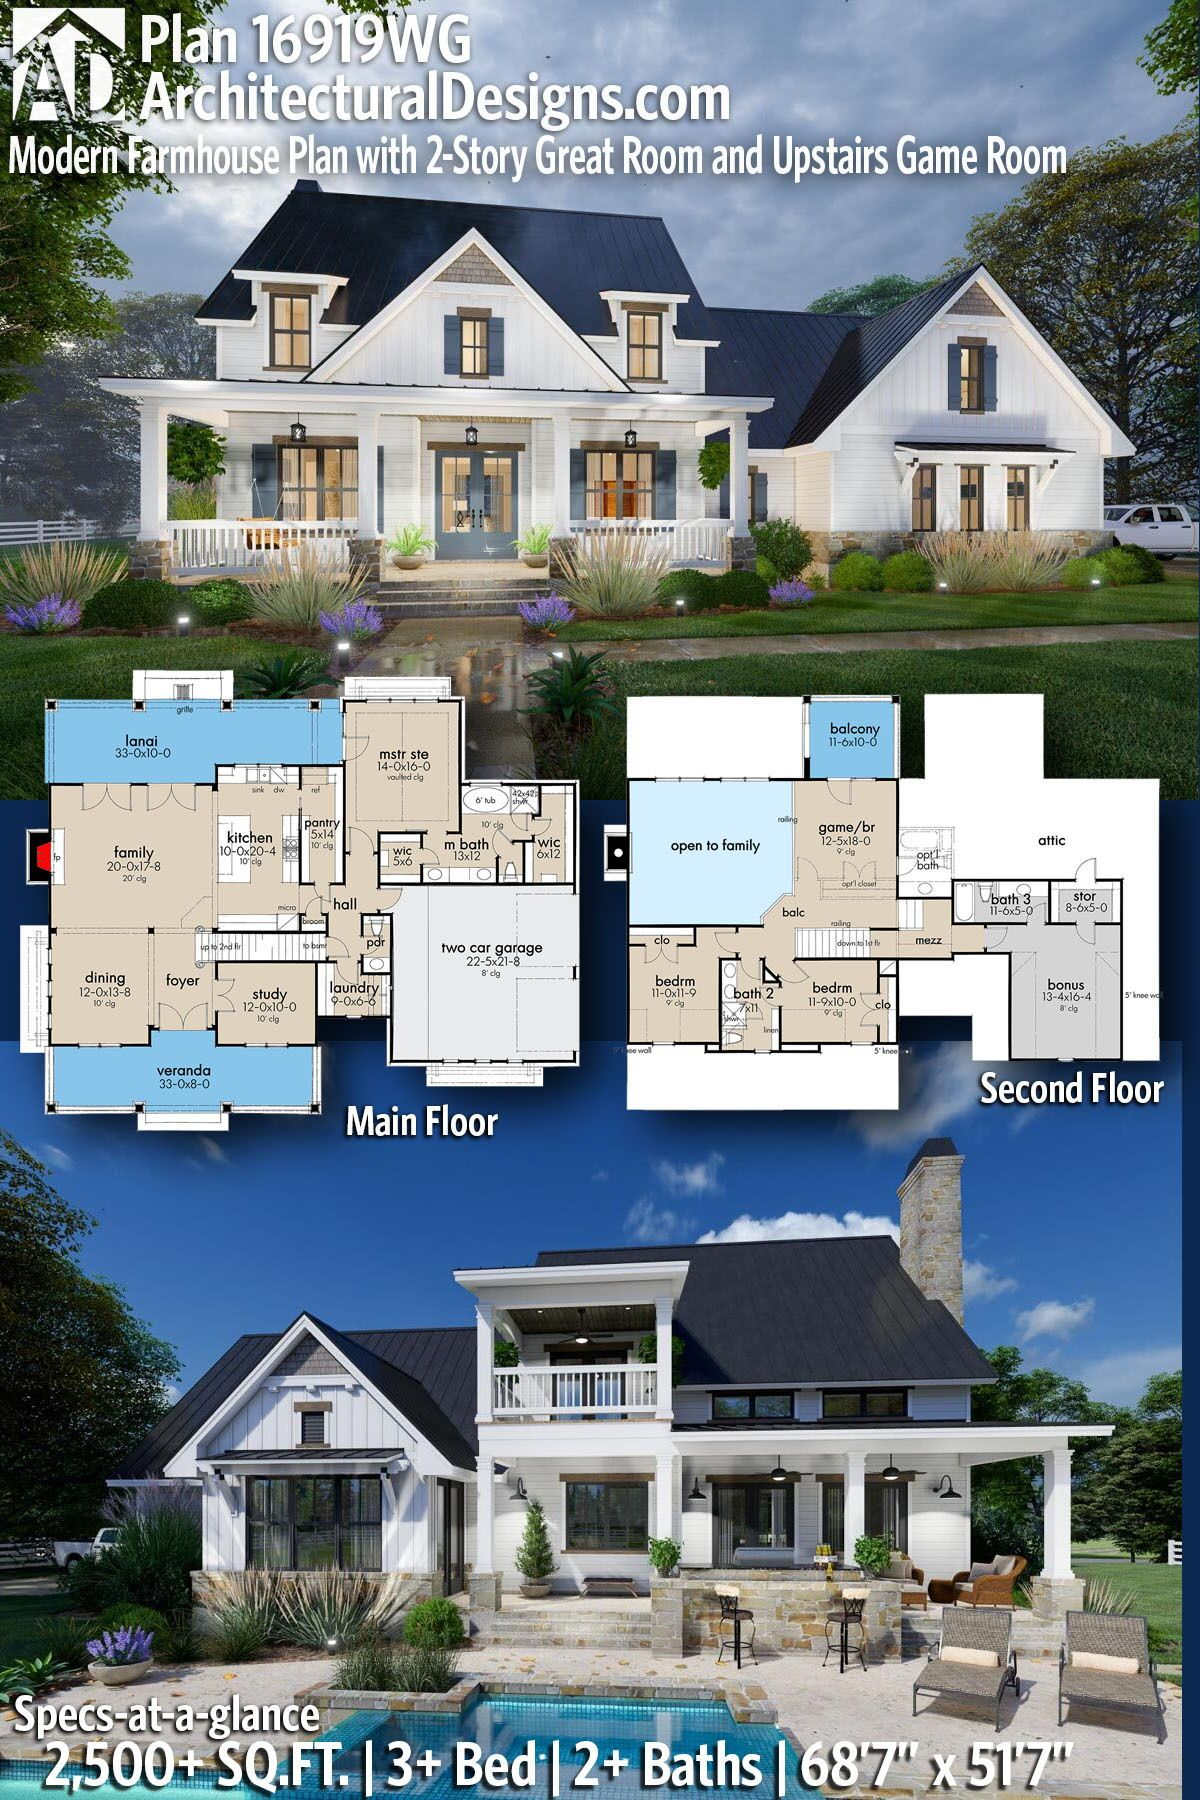 Plan 16919wg Modern Farmhouse Plan With 2 Story Great Room And Upstairs Game Room Modern Farmhouse Plans House Plans Farmhouse Farmhouse Plans